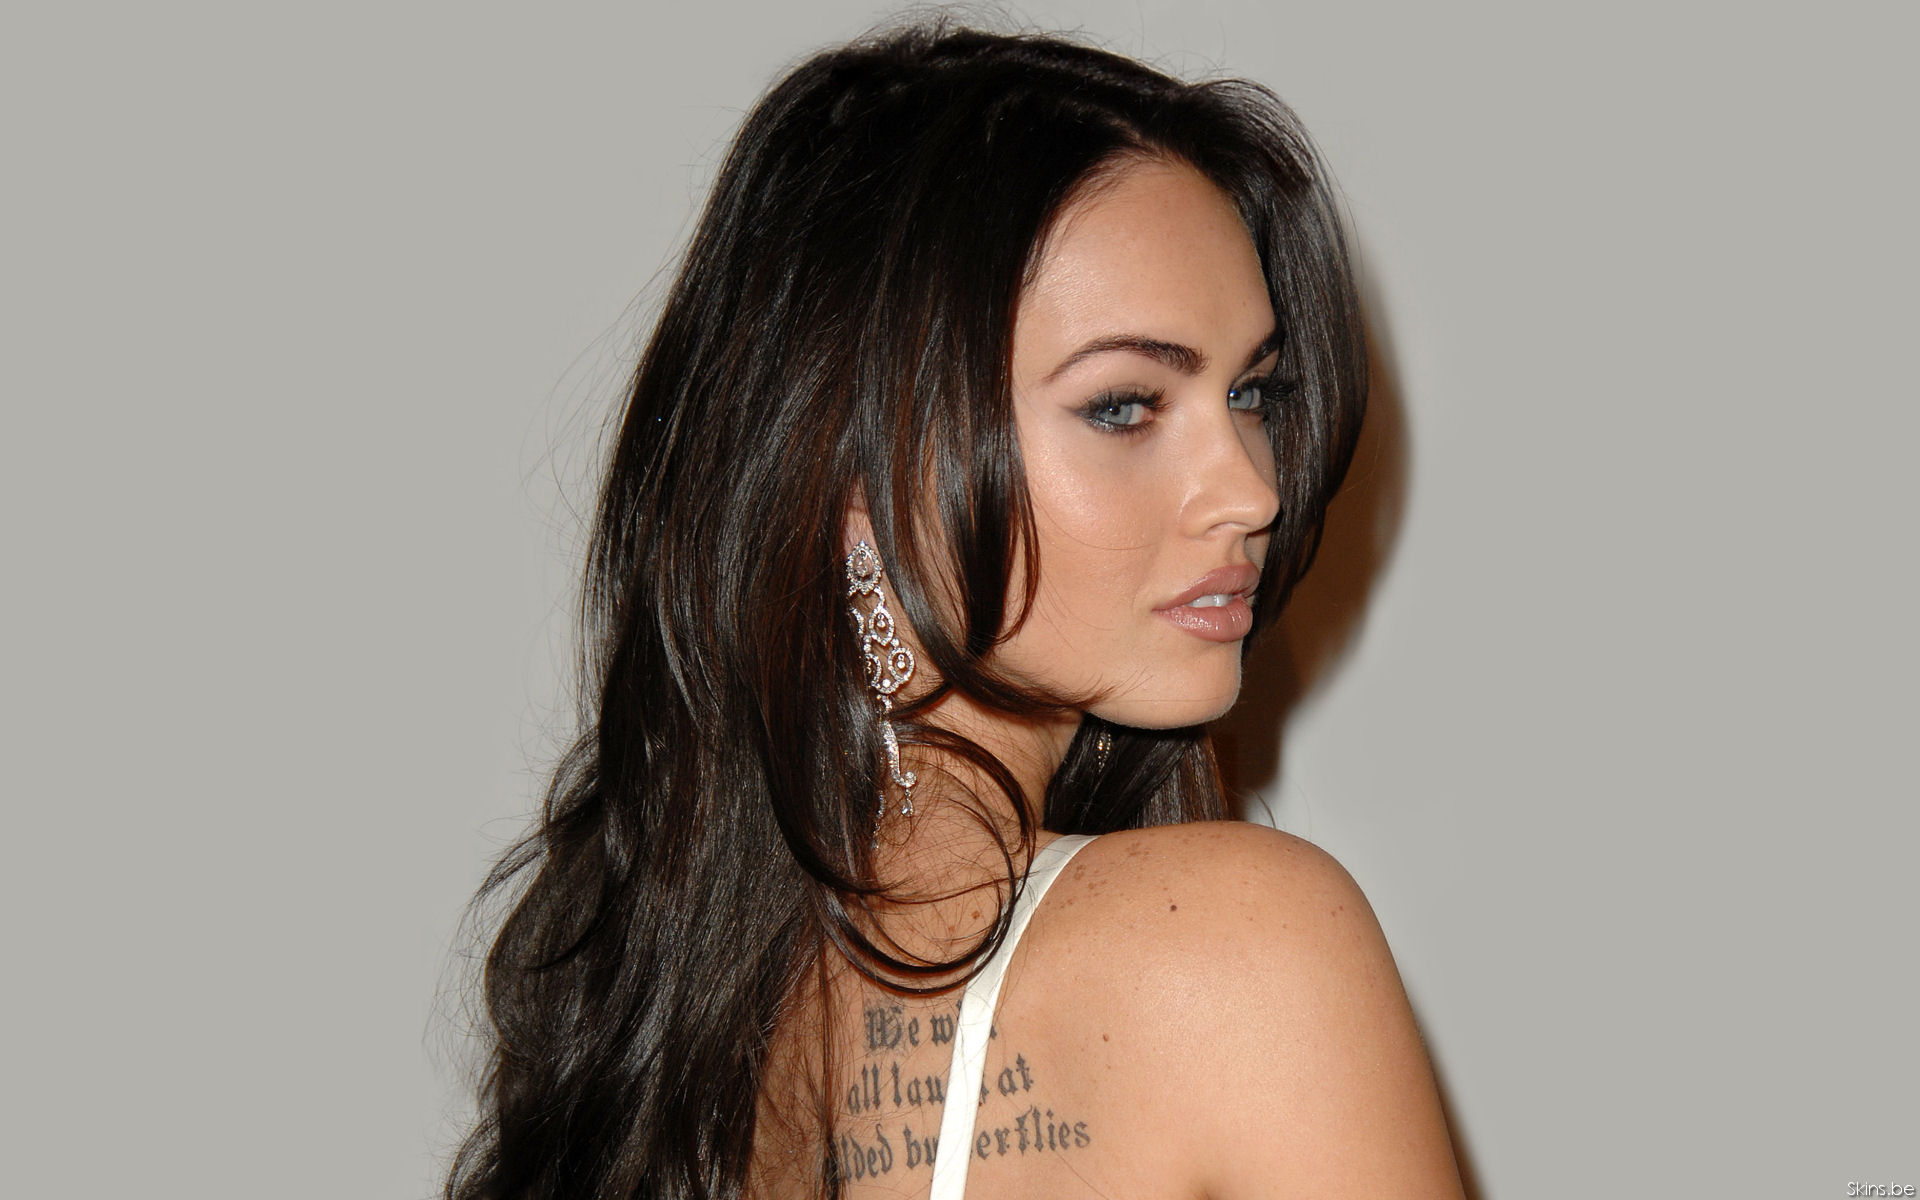 Megan Fox photo #74236